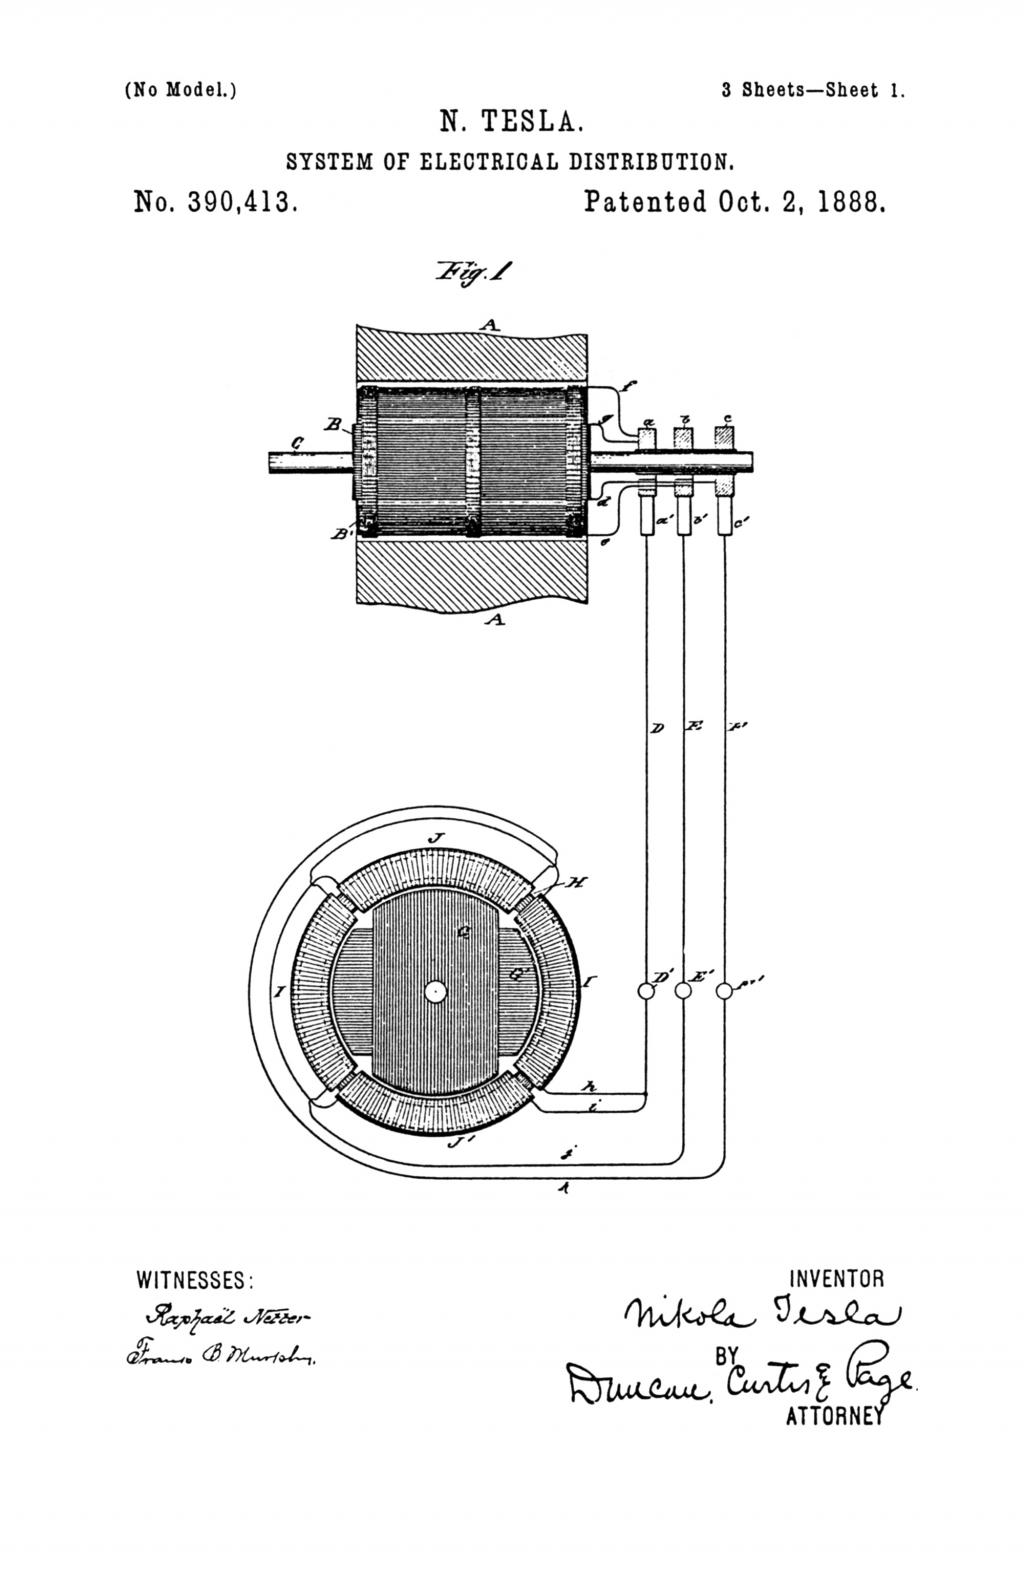 Nikola Tesla U.S. Patent 390,413 - System of Electrical Distribution - Image 1